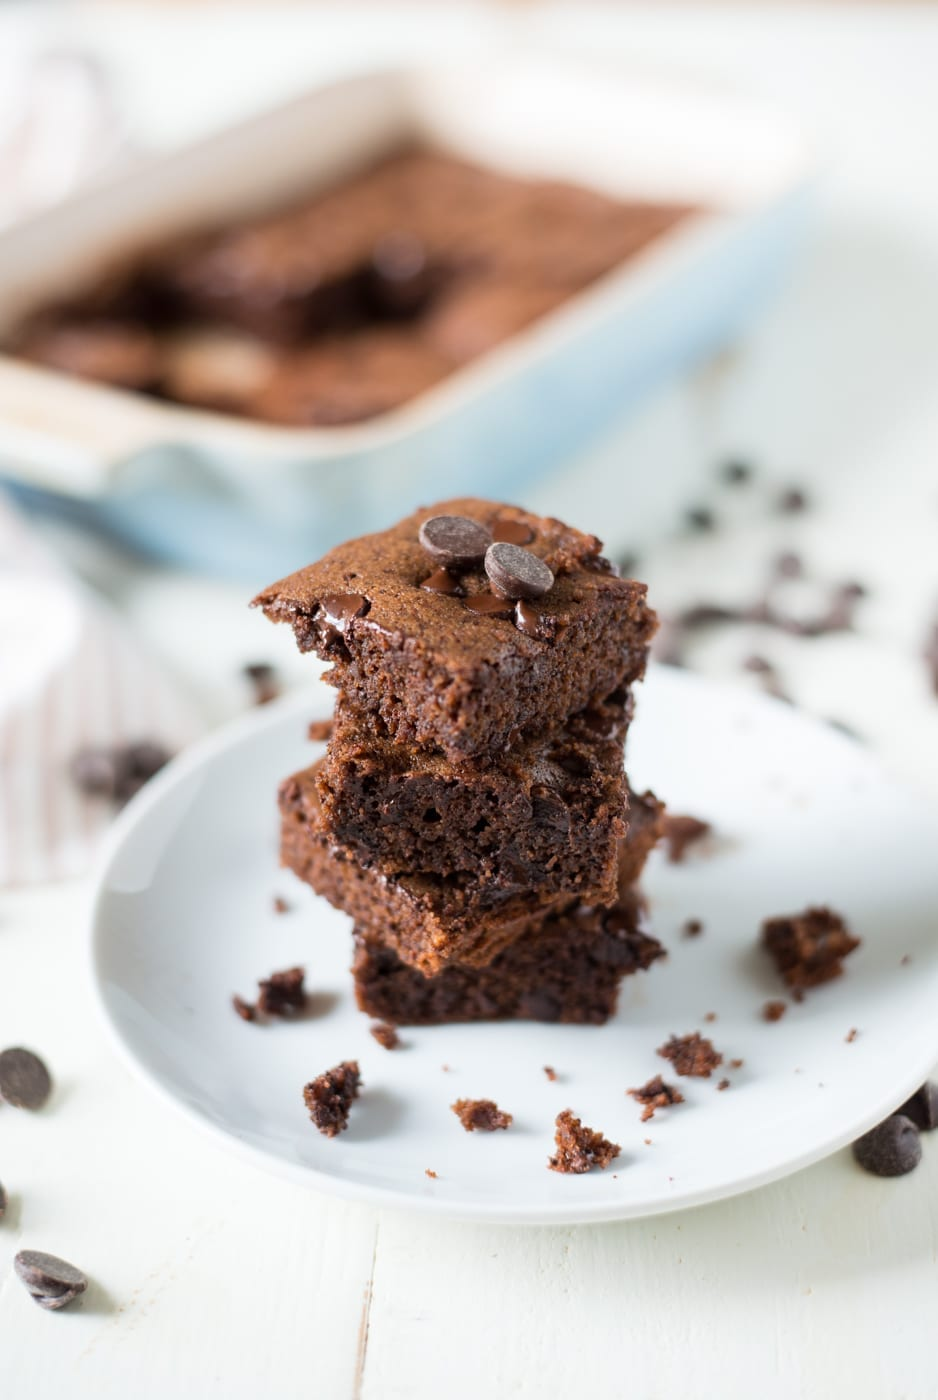 four brownies stacked on top of each other on a white plate with a pan of brownies in the background